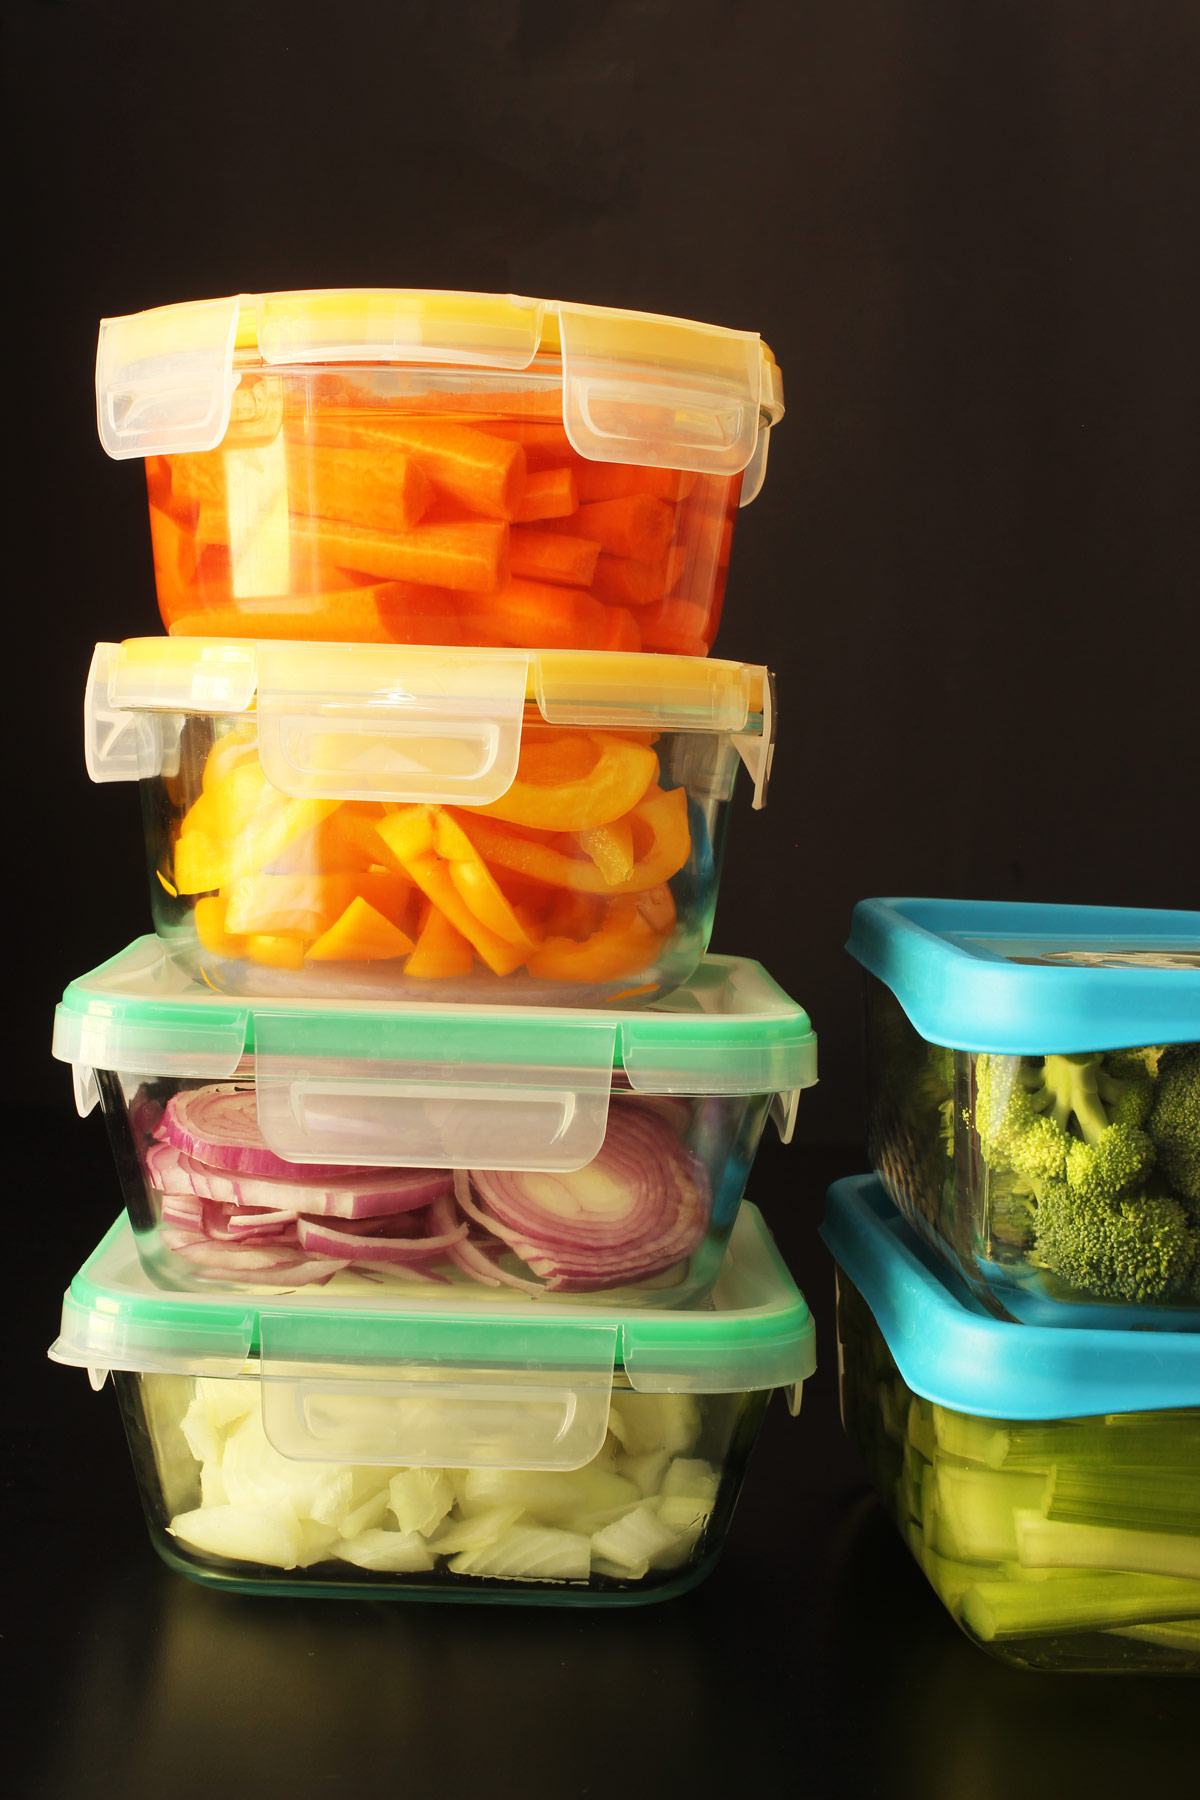 vegetables prepped in glass containers with lids.